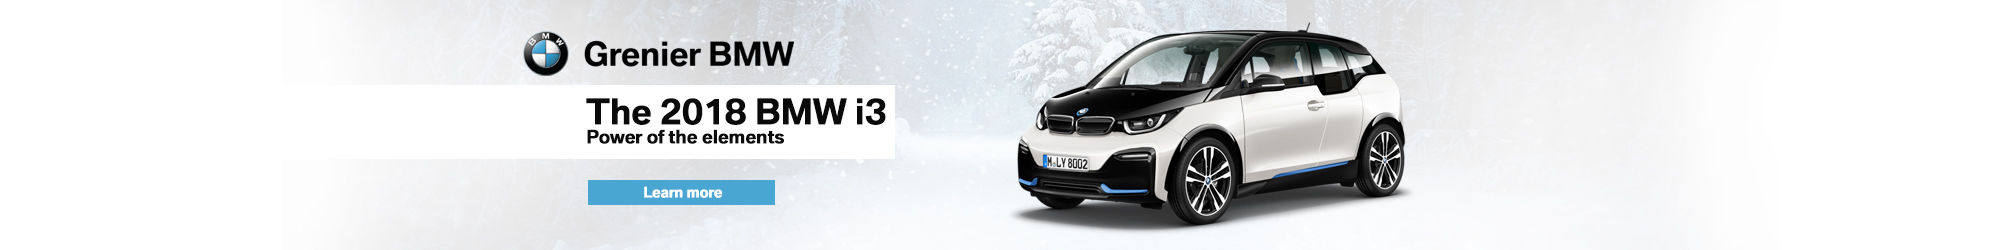 BMW i3 in inventory (January)